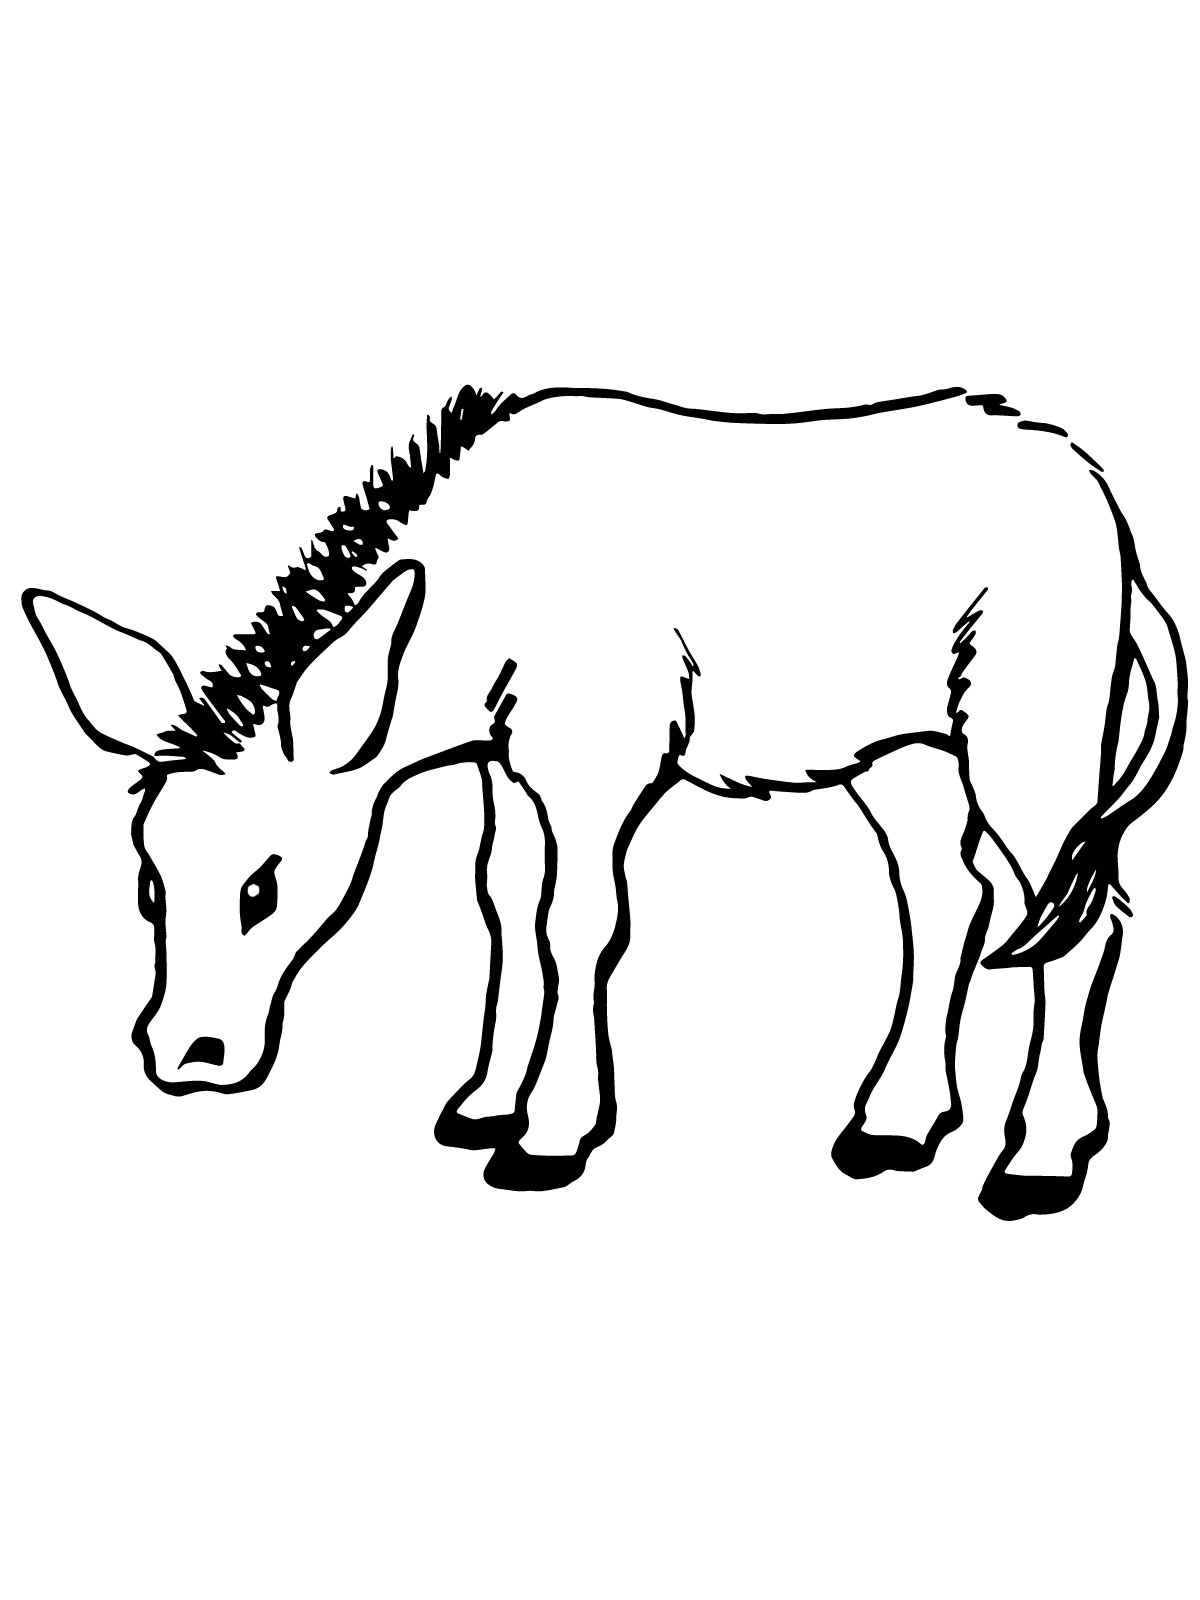 free online coloring pages to print | Free Printable Donkey Coloring Pages For Kids